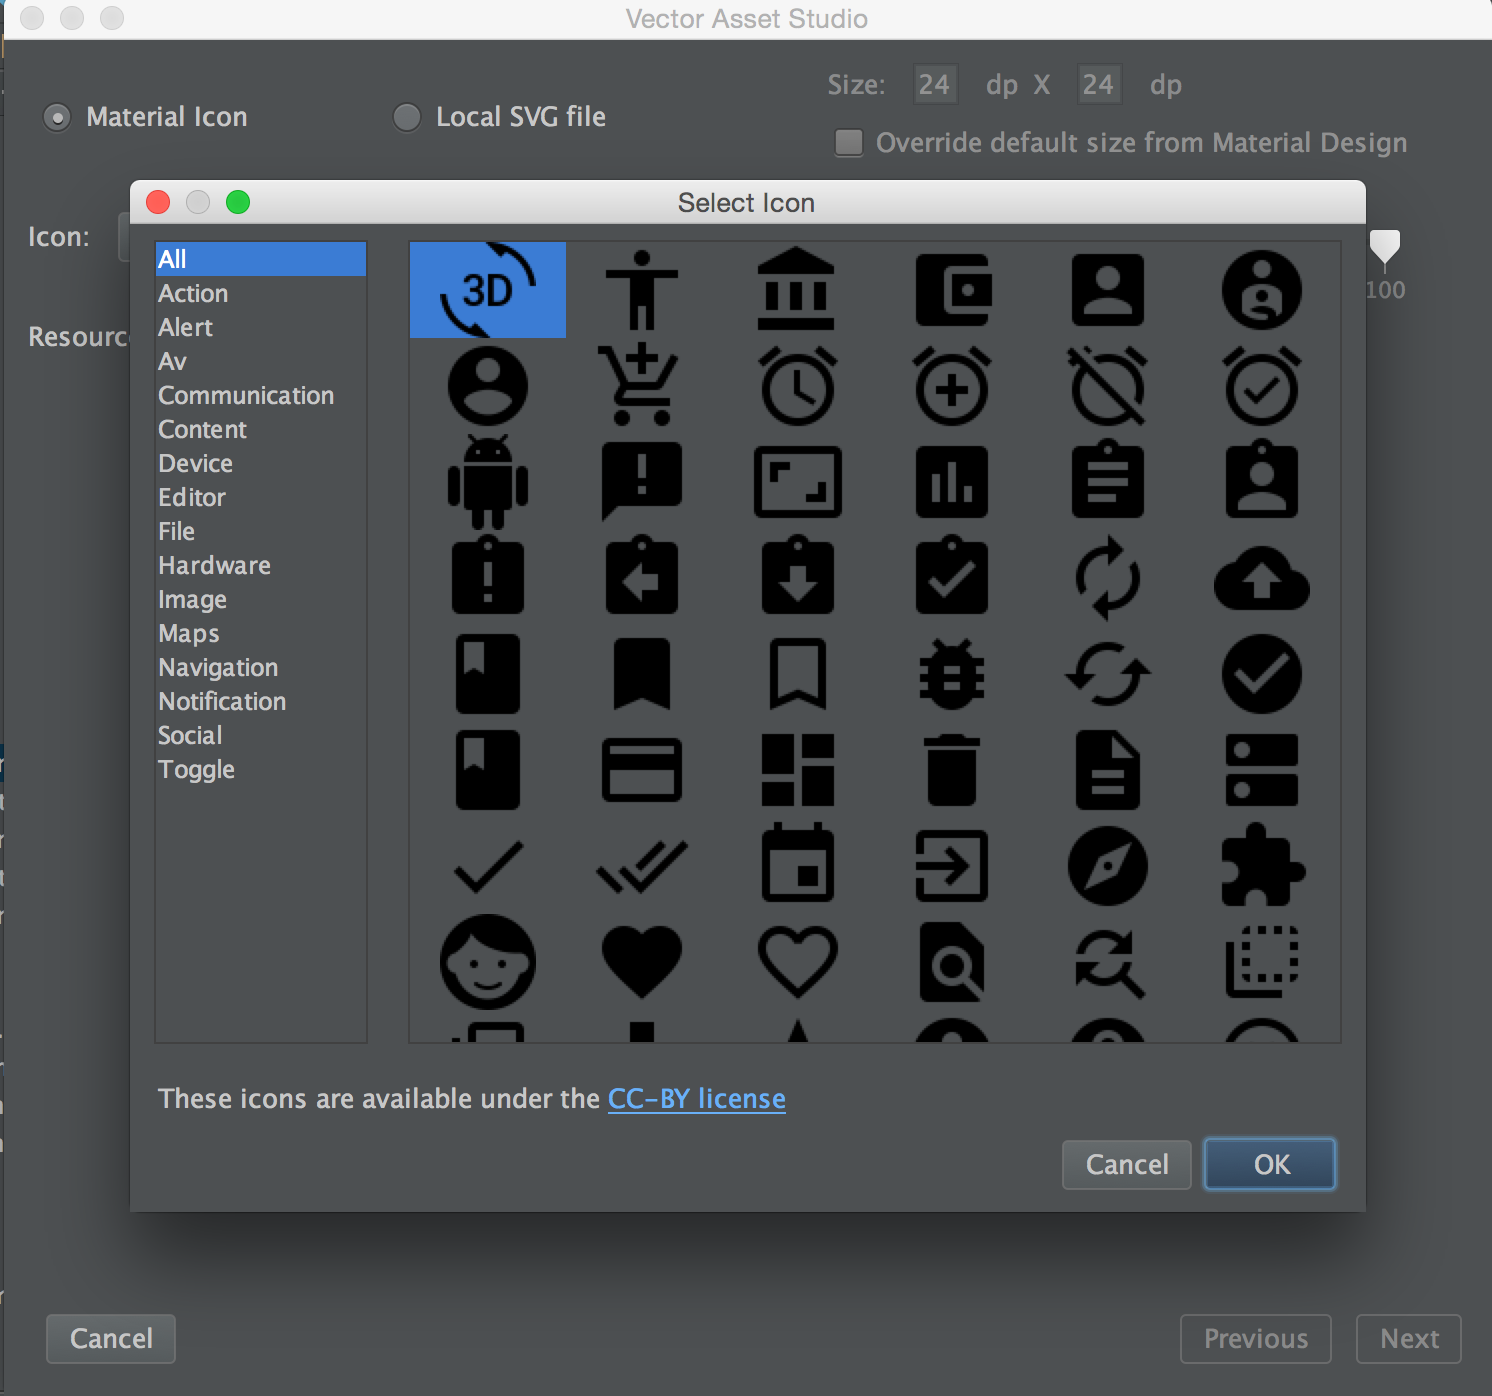 Select_Icon_and_Vector_Asset_Studio_and_ic_twitter_24dp_vector_xml_-_droidkaigi2016_-____work_private_droidkaigi2016__-_Android_Studio_1_5_Beta.png